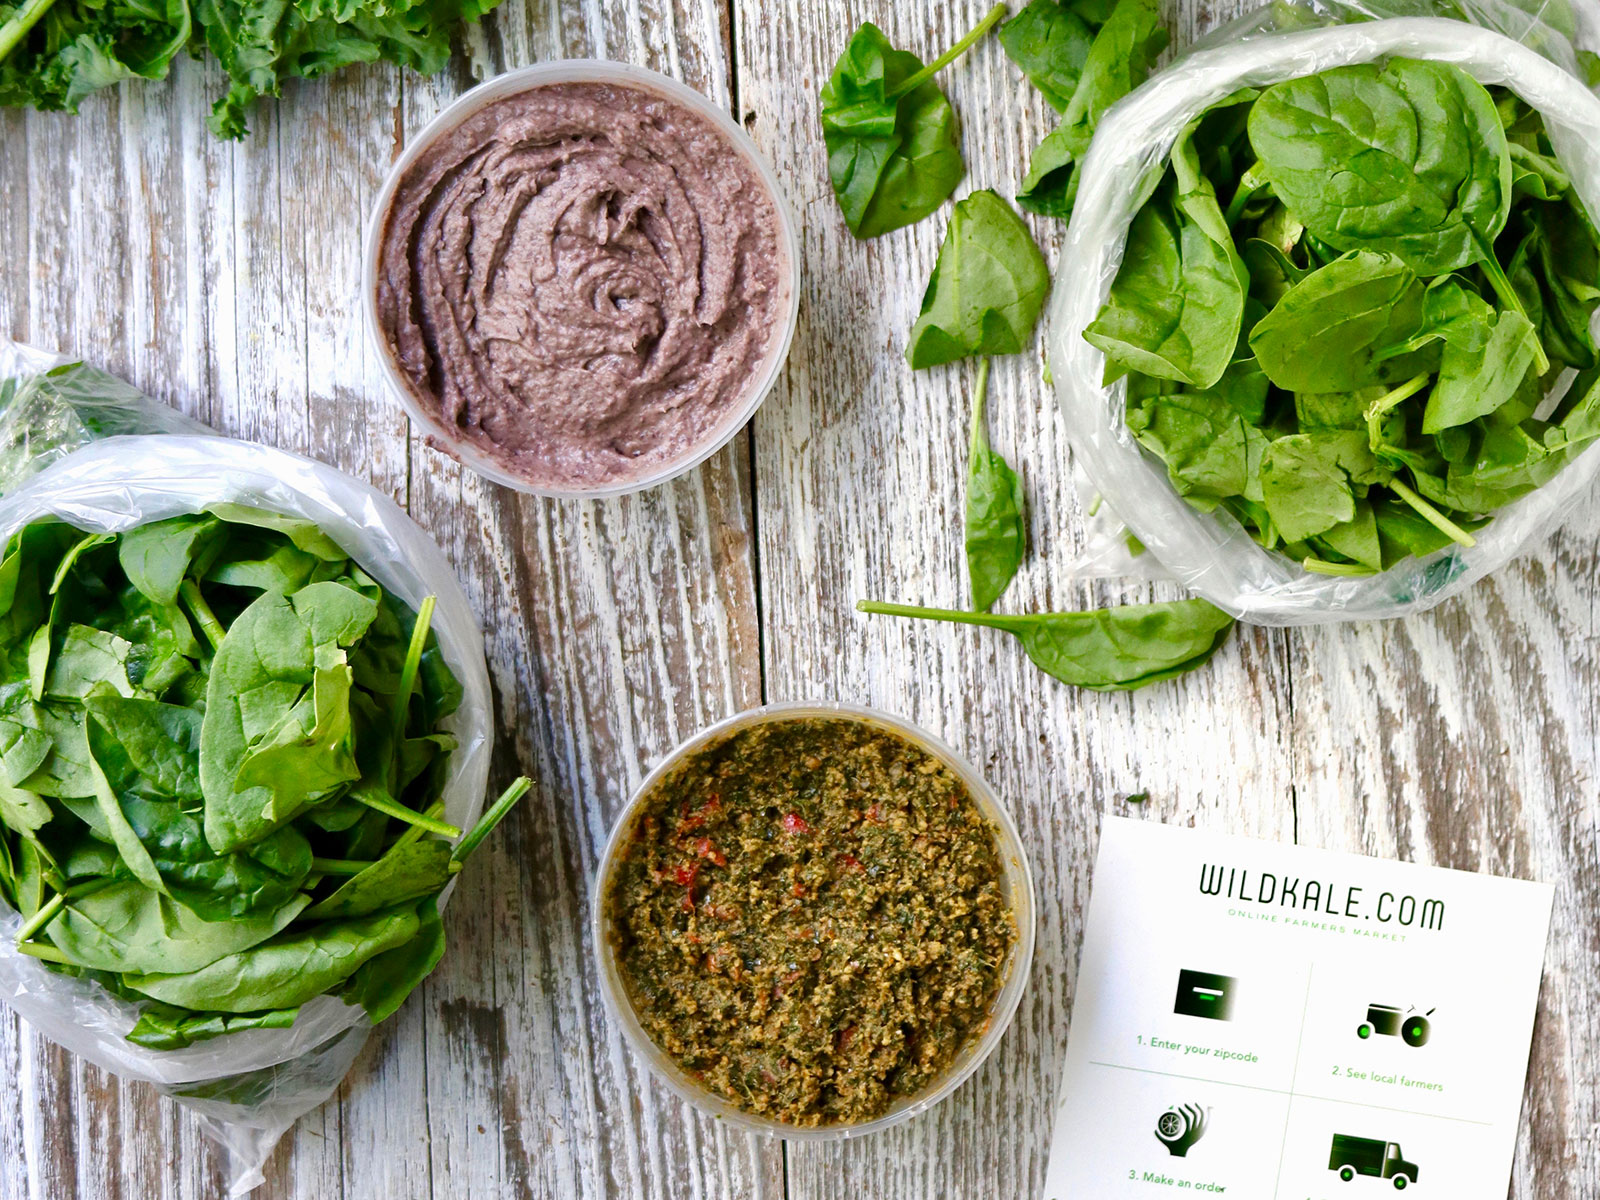 WildKale Helps Farmers Sell Directly to Online Customers Through an App